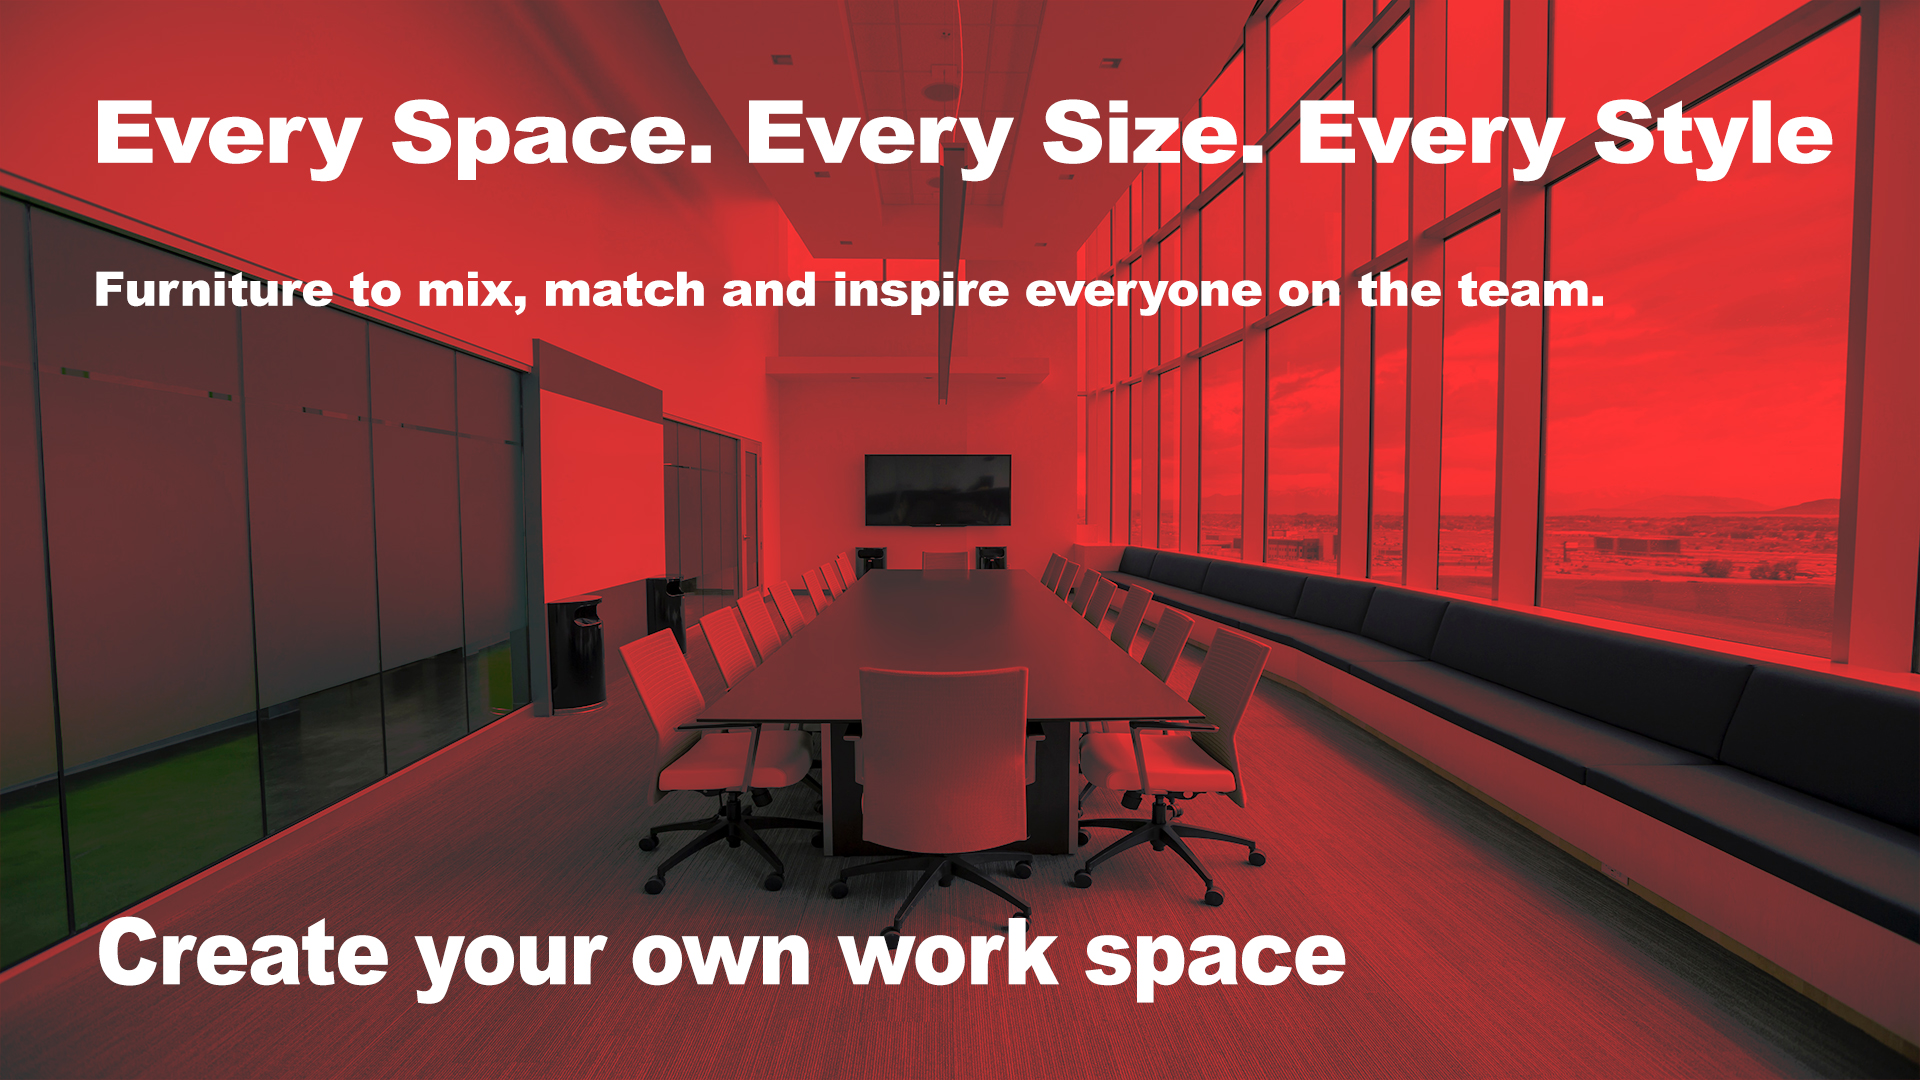 Space_Size_Style Office Furniture